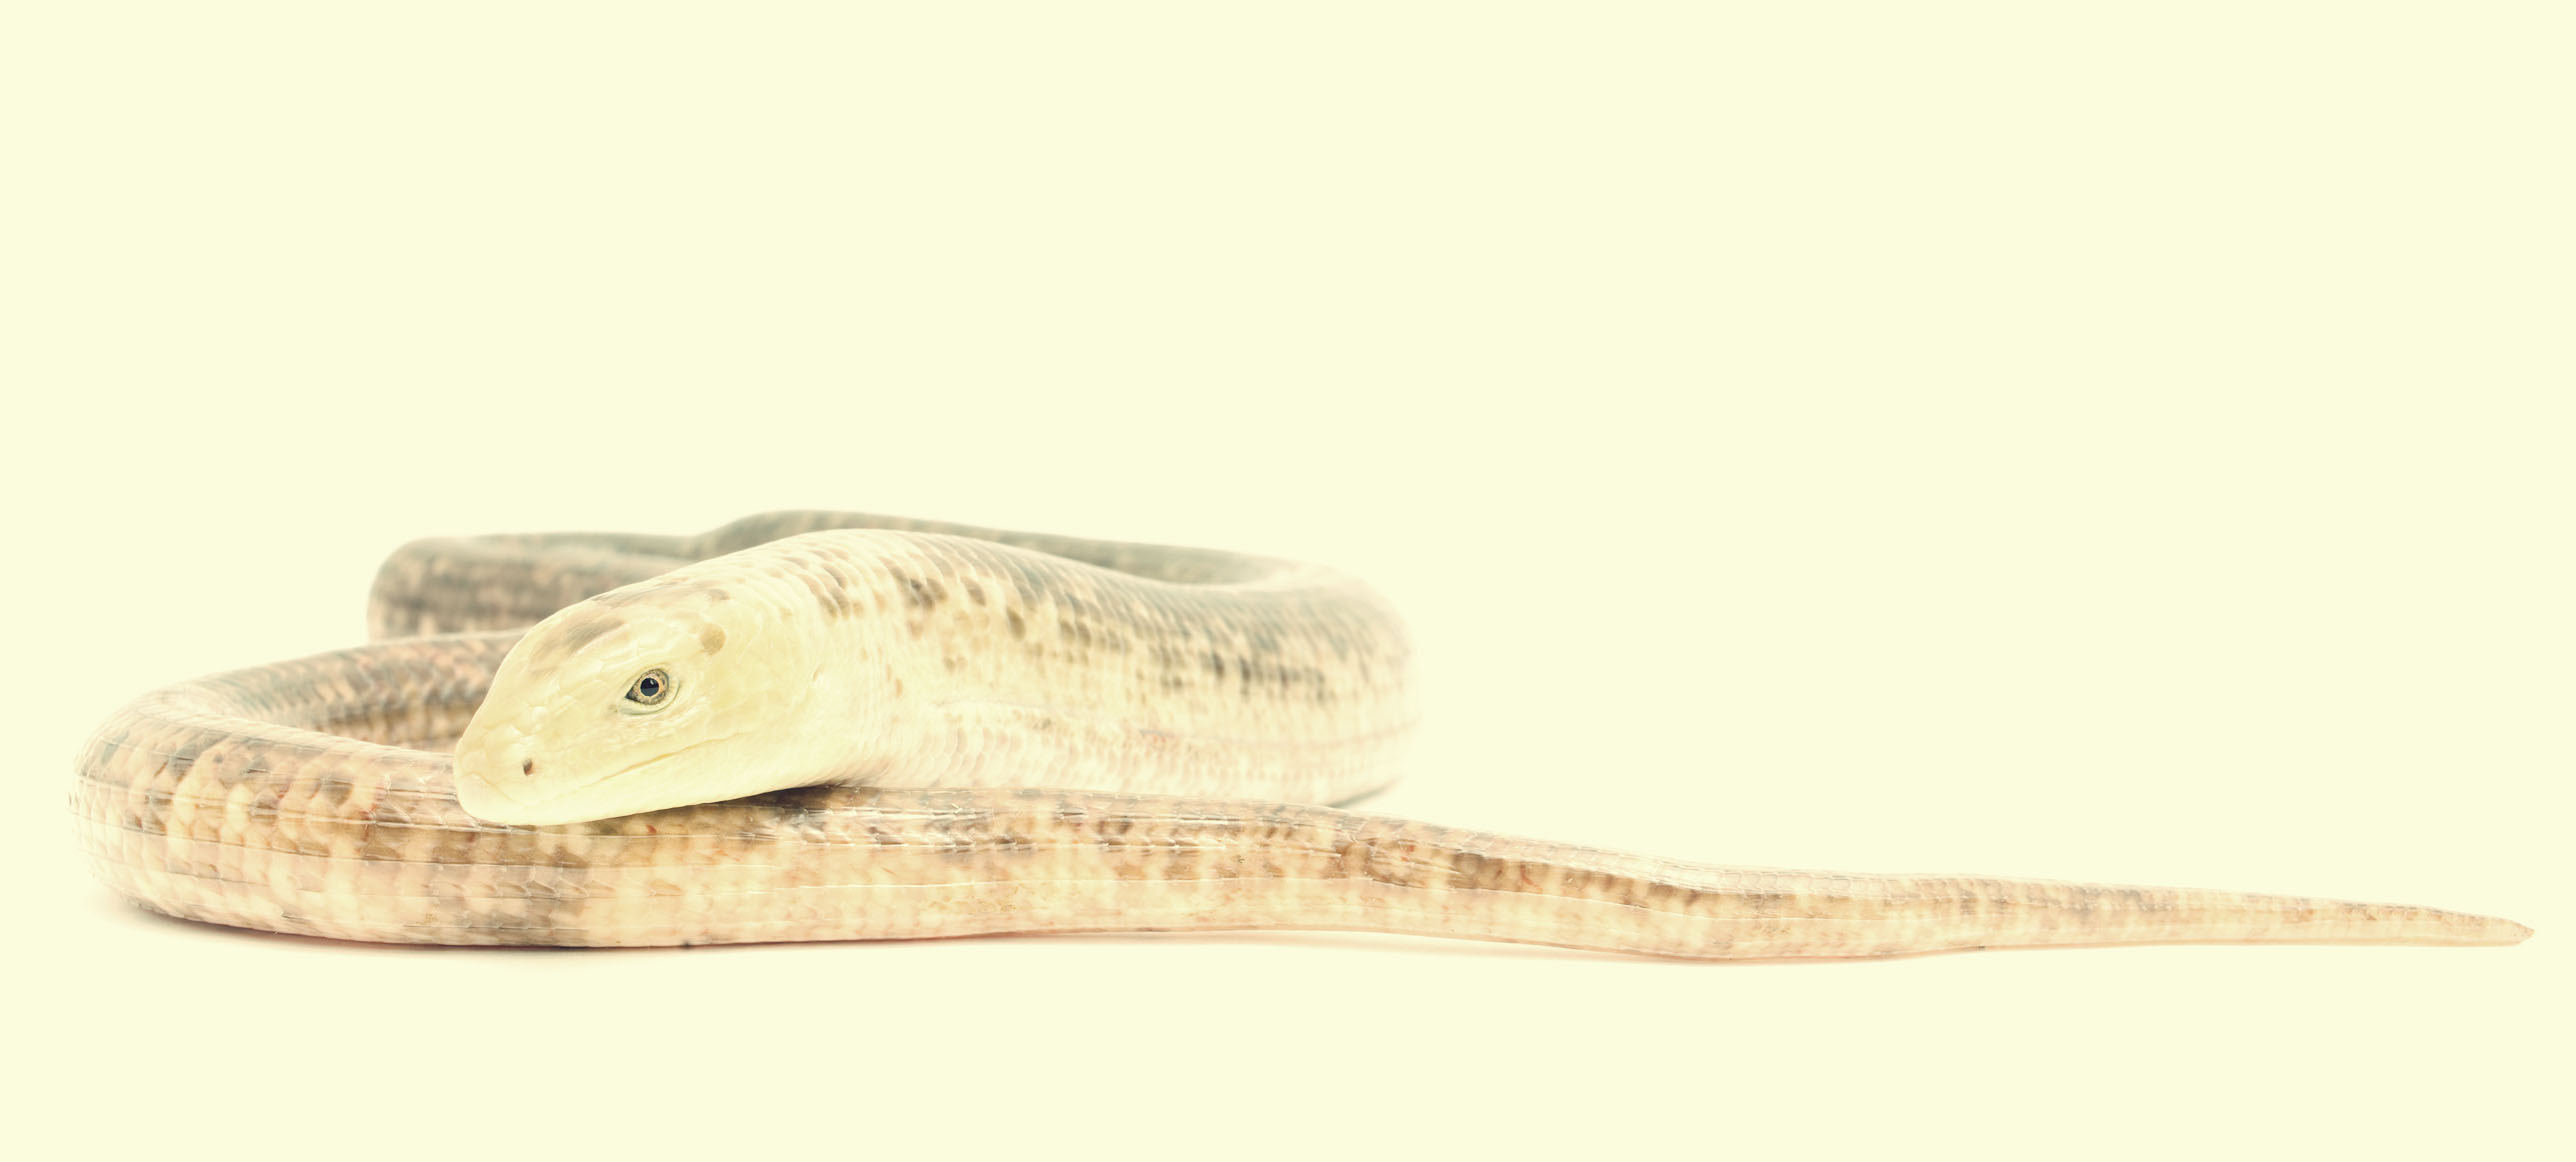 European Legless lizard